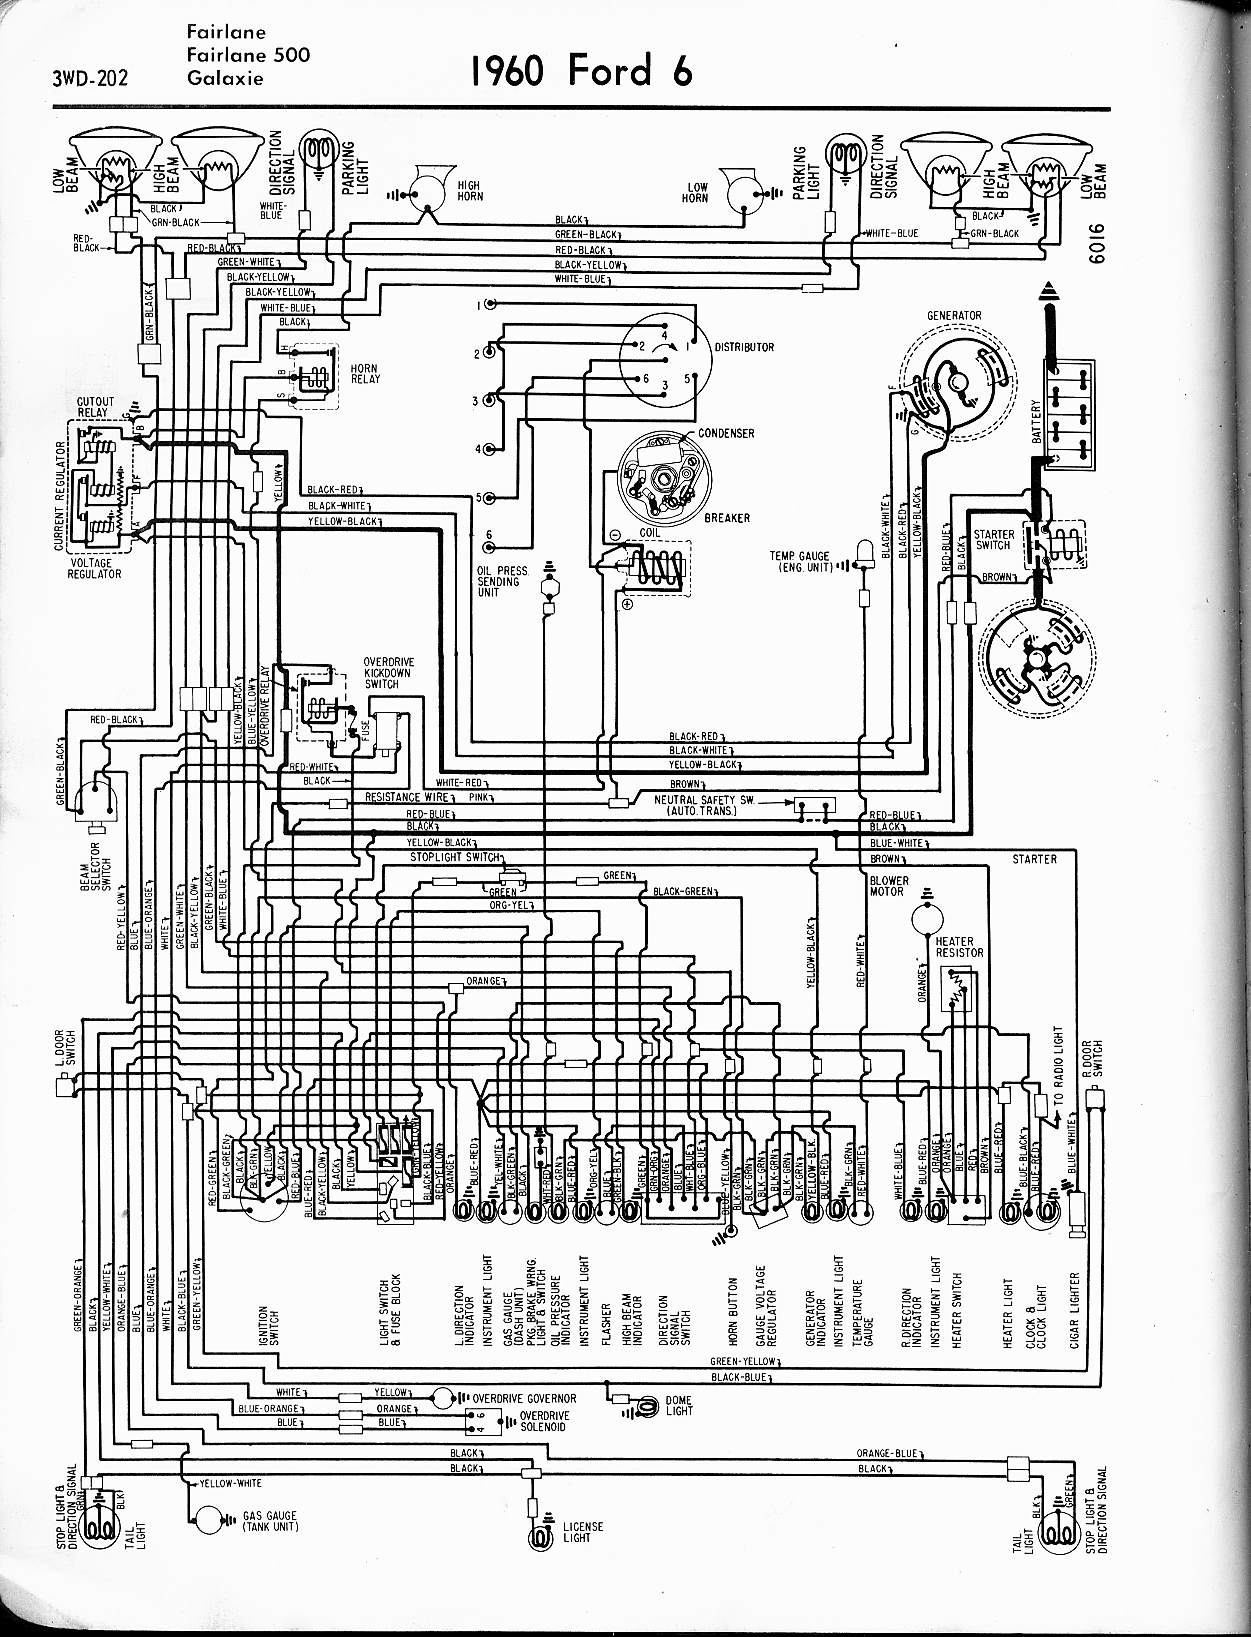 1960 ford f100 wiring diagram detailed schematic diagrams rh 4rmotorsports com 1969 Chevy Truck Wiring Diagram 1969 Chevy Truck Wiring Diagram